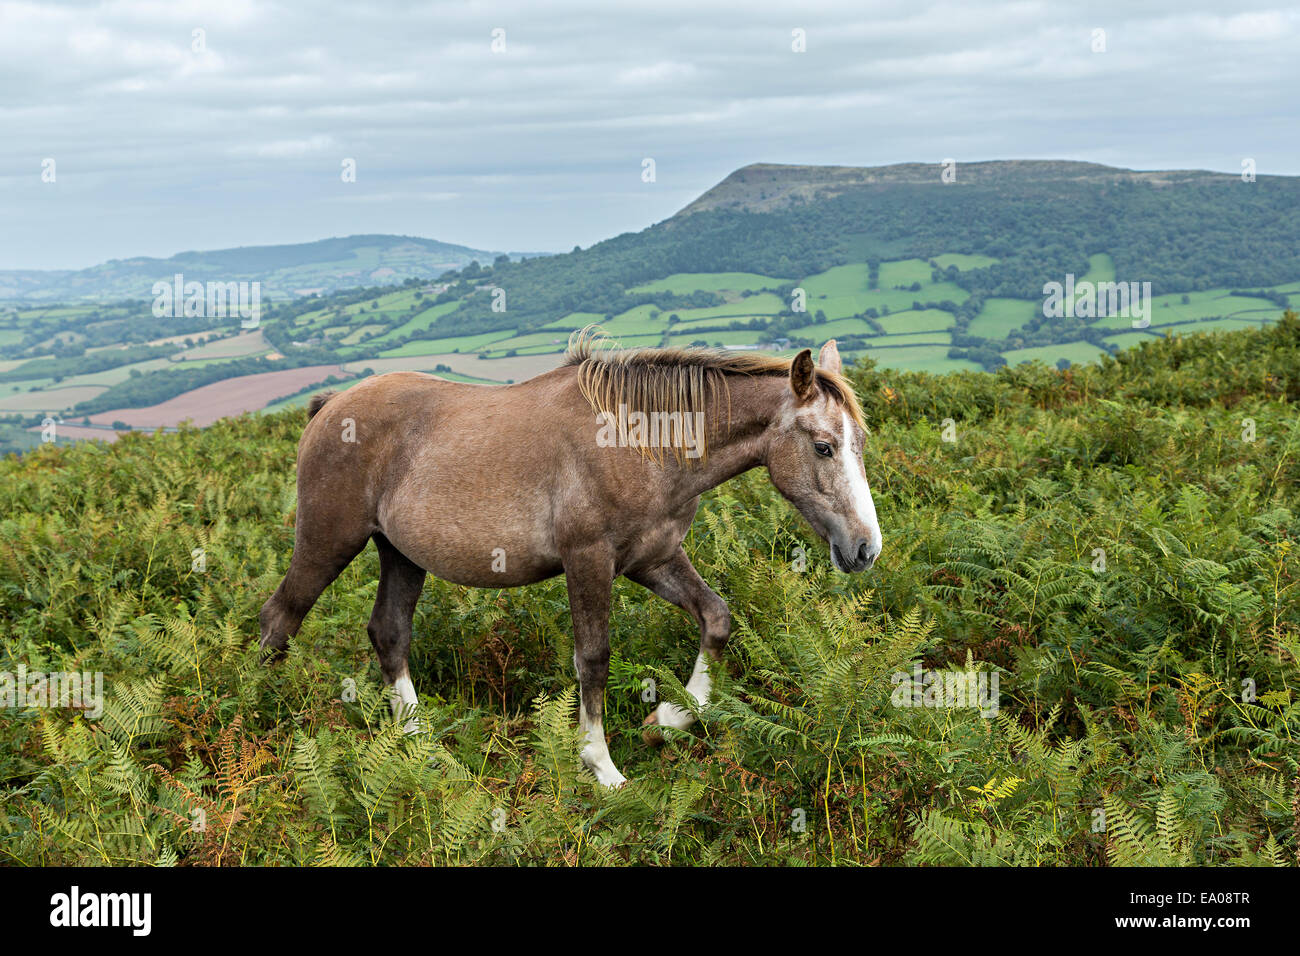 Pony walking in bracken on the Sugar Loaf mountain, Abergavenny, Wales, UK - Stock Image